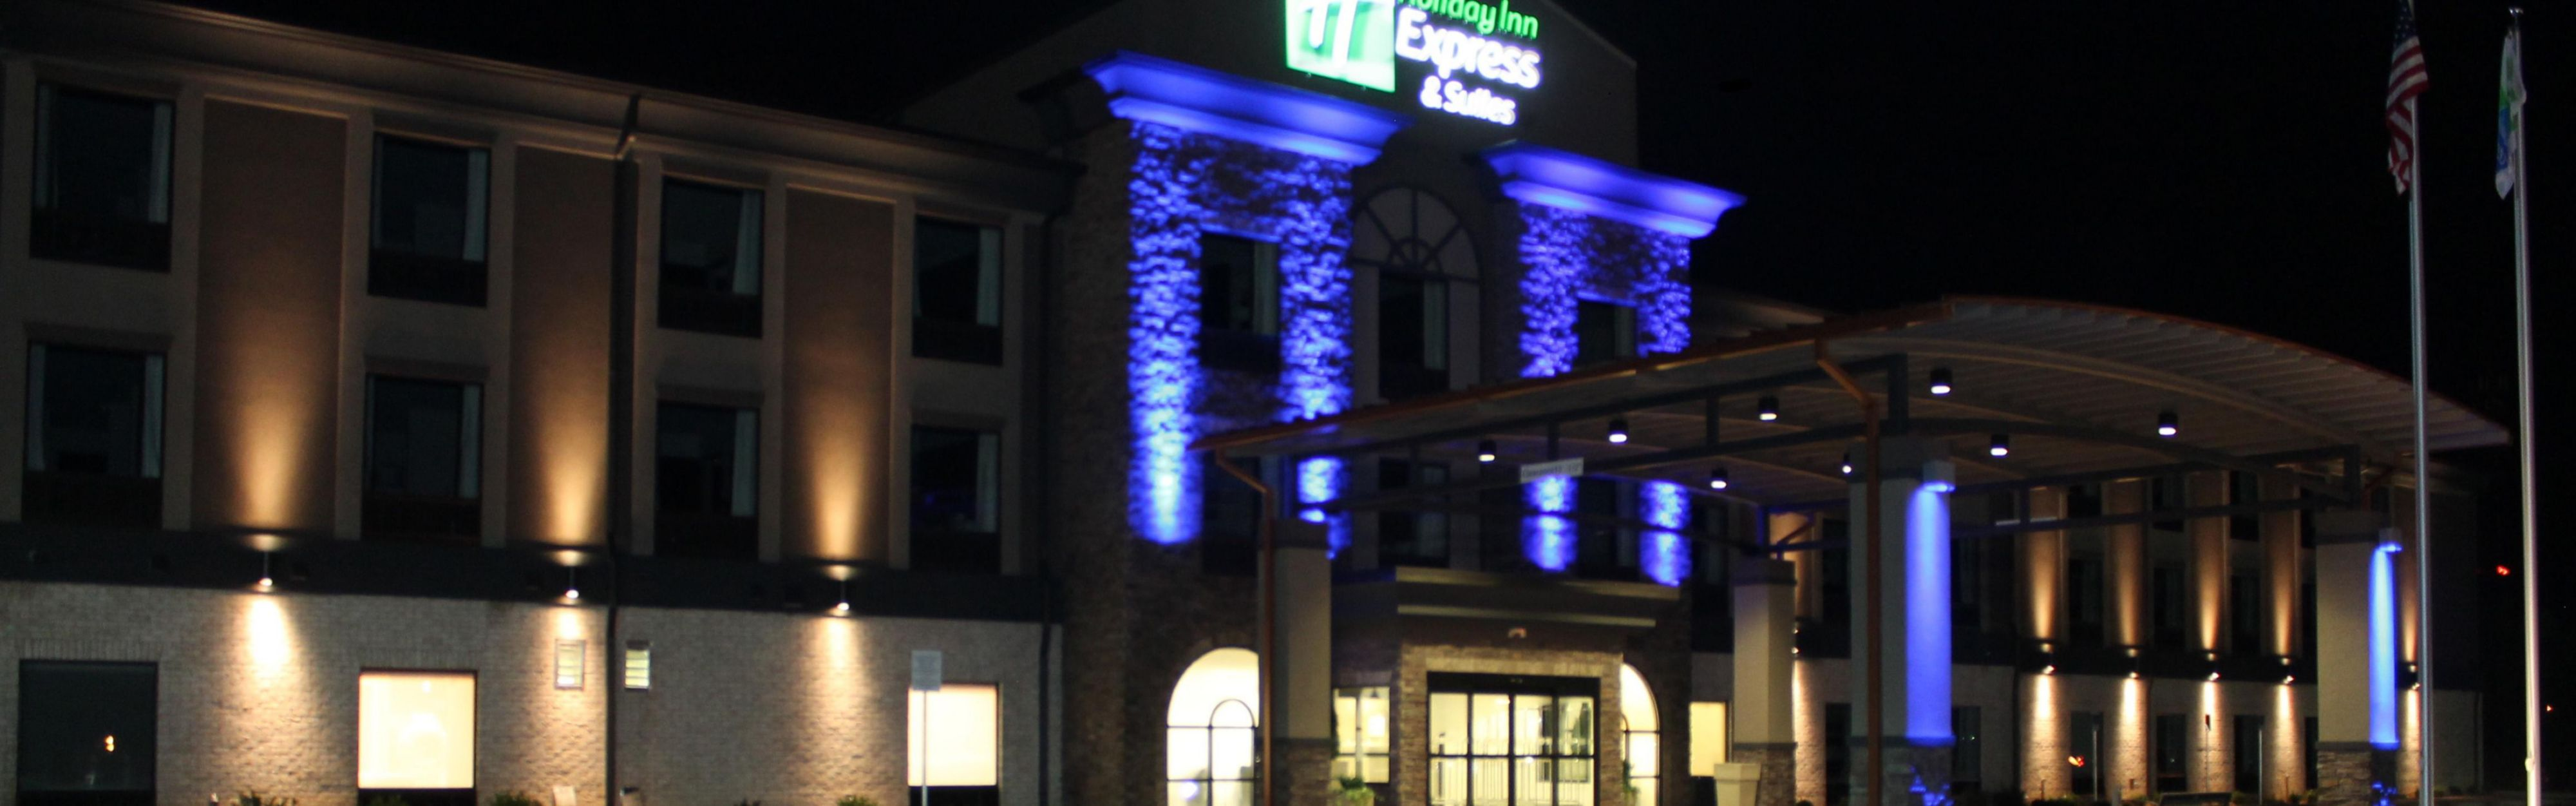 Holiday Inn Express & Suites GLASGOW image 0